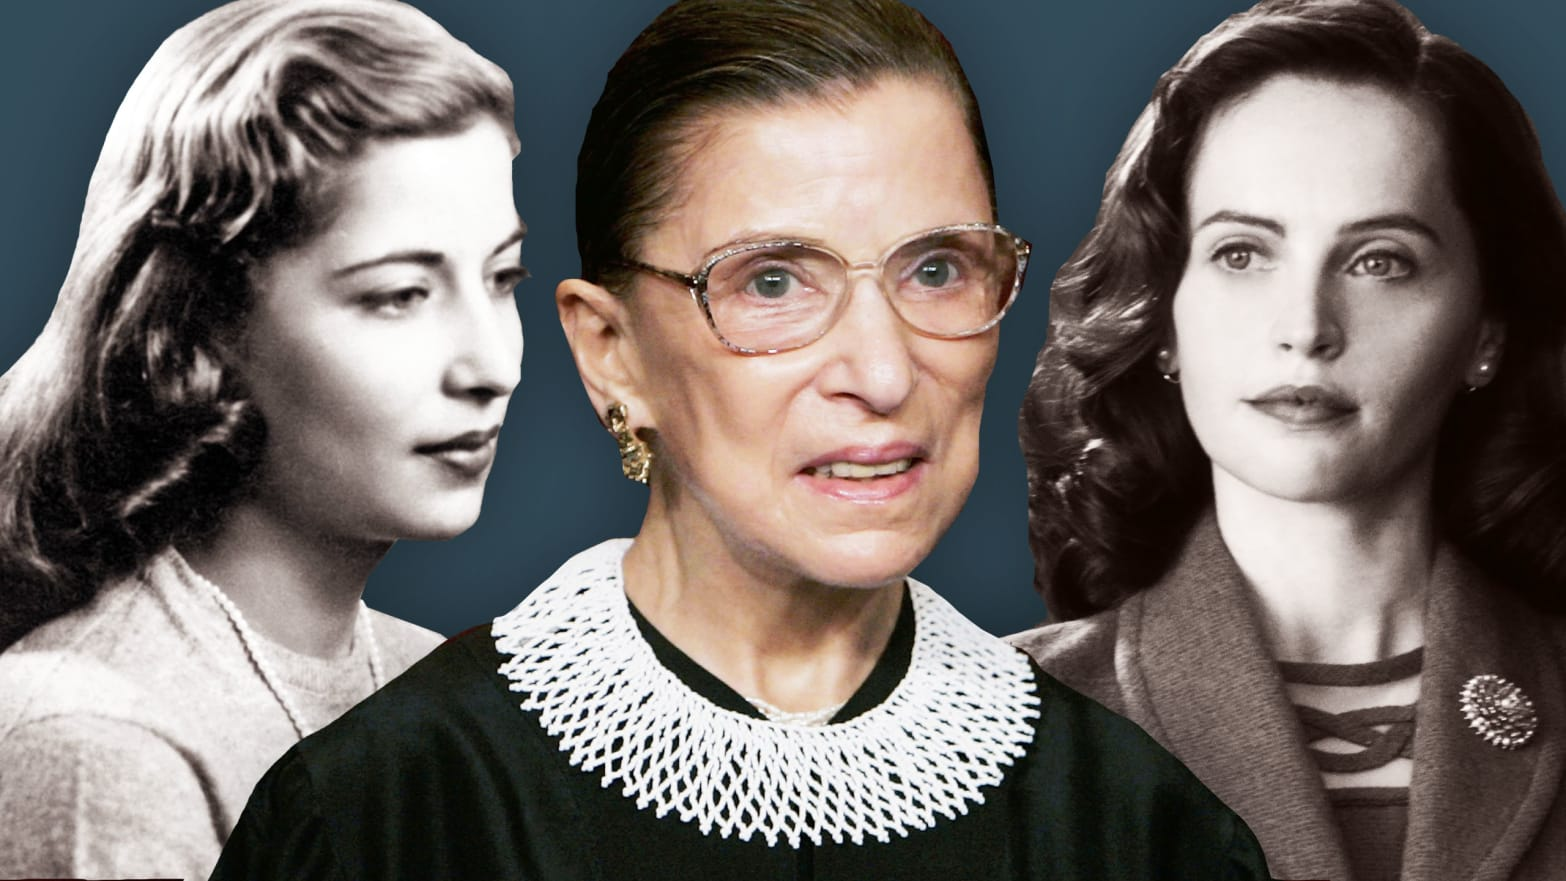 Supreme Court Justice Ruth Bader Ginsburg Fact Checks Her Own Biopic On The Basis Of Sex